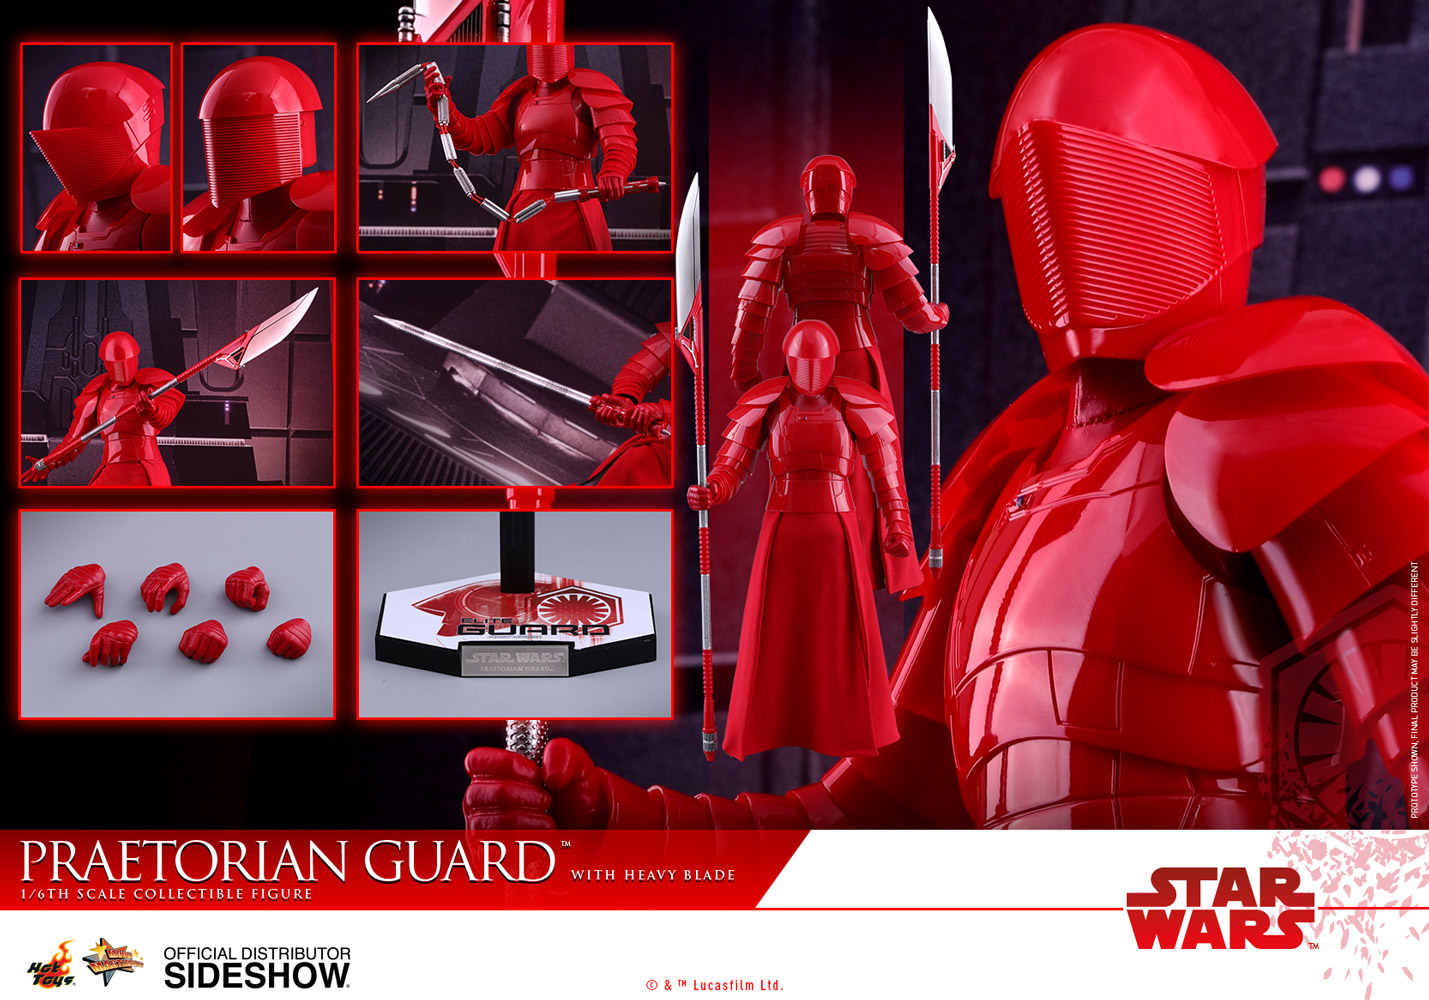 star-wars-praetorian-guard-with-heavy-blade-sixth-scale-hot-toys-903182-20